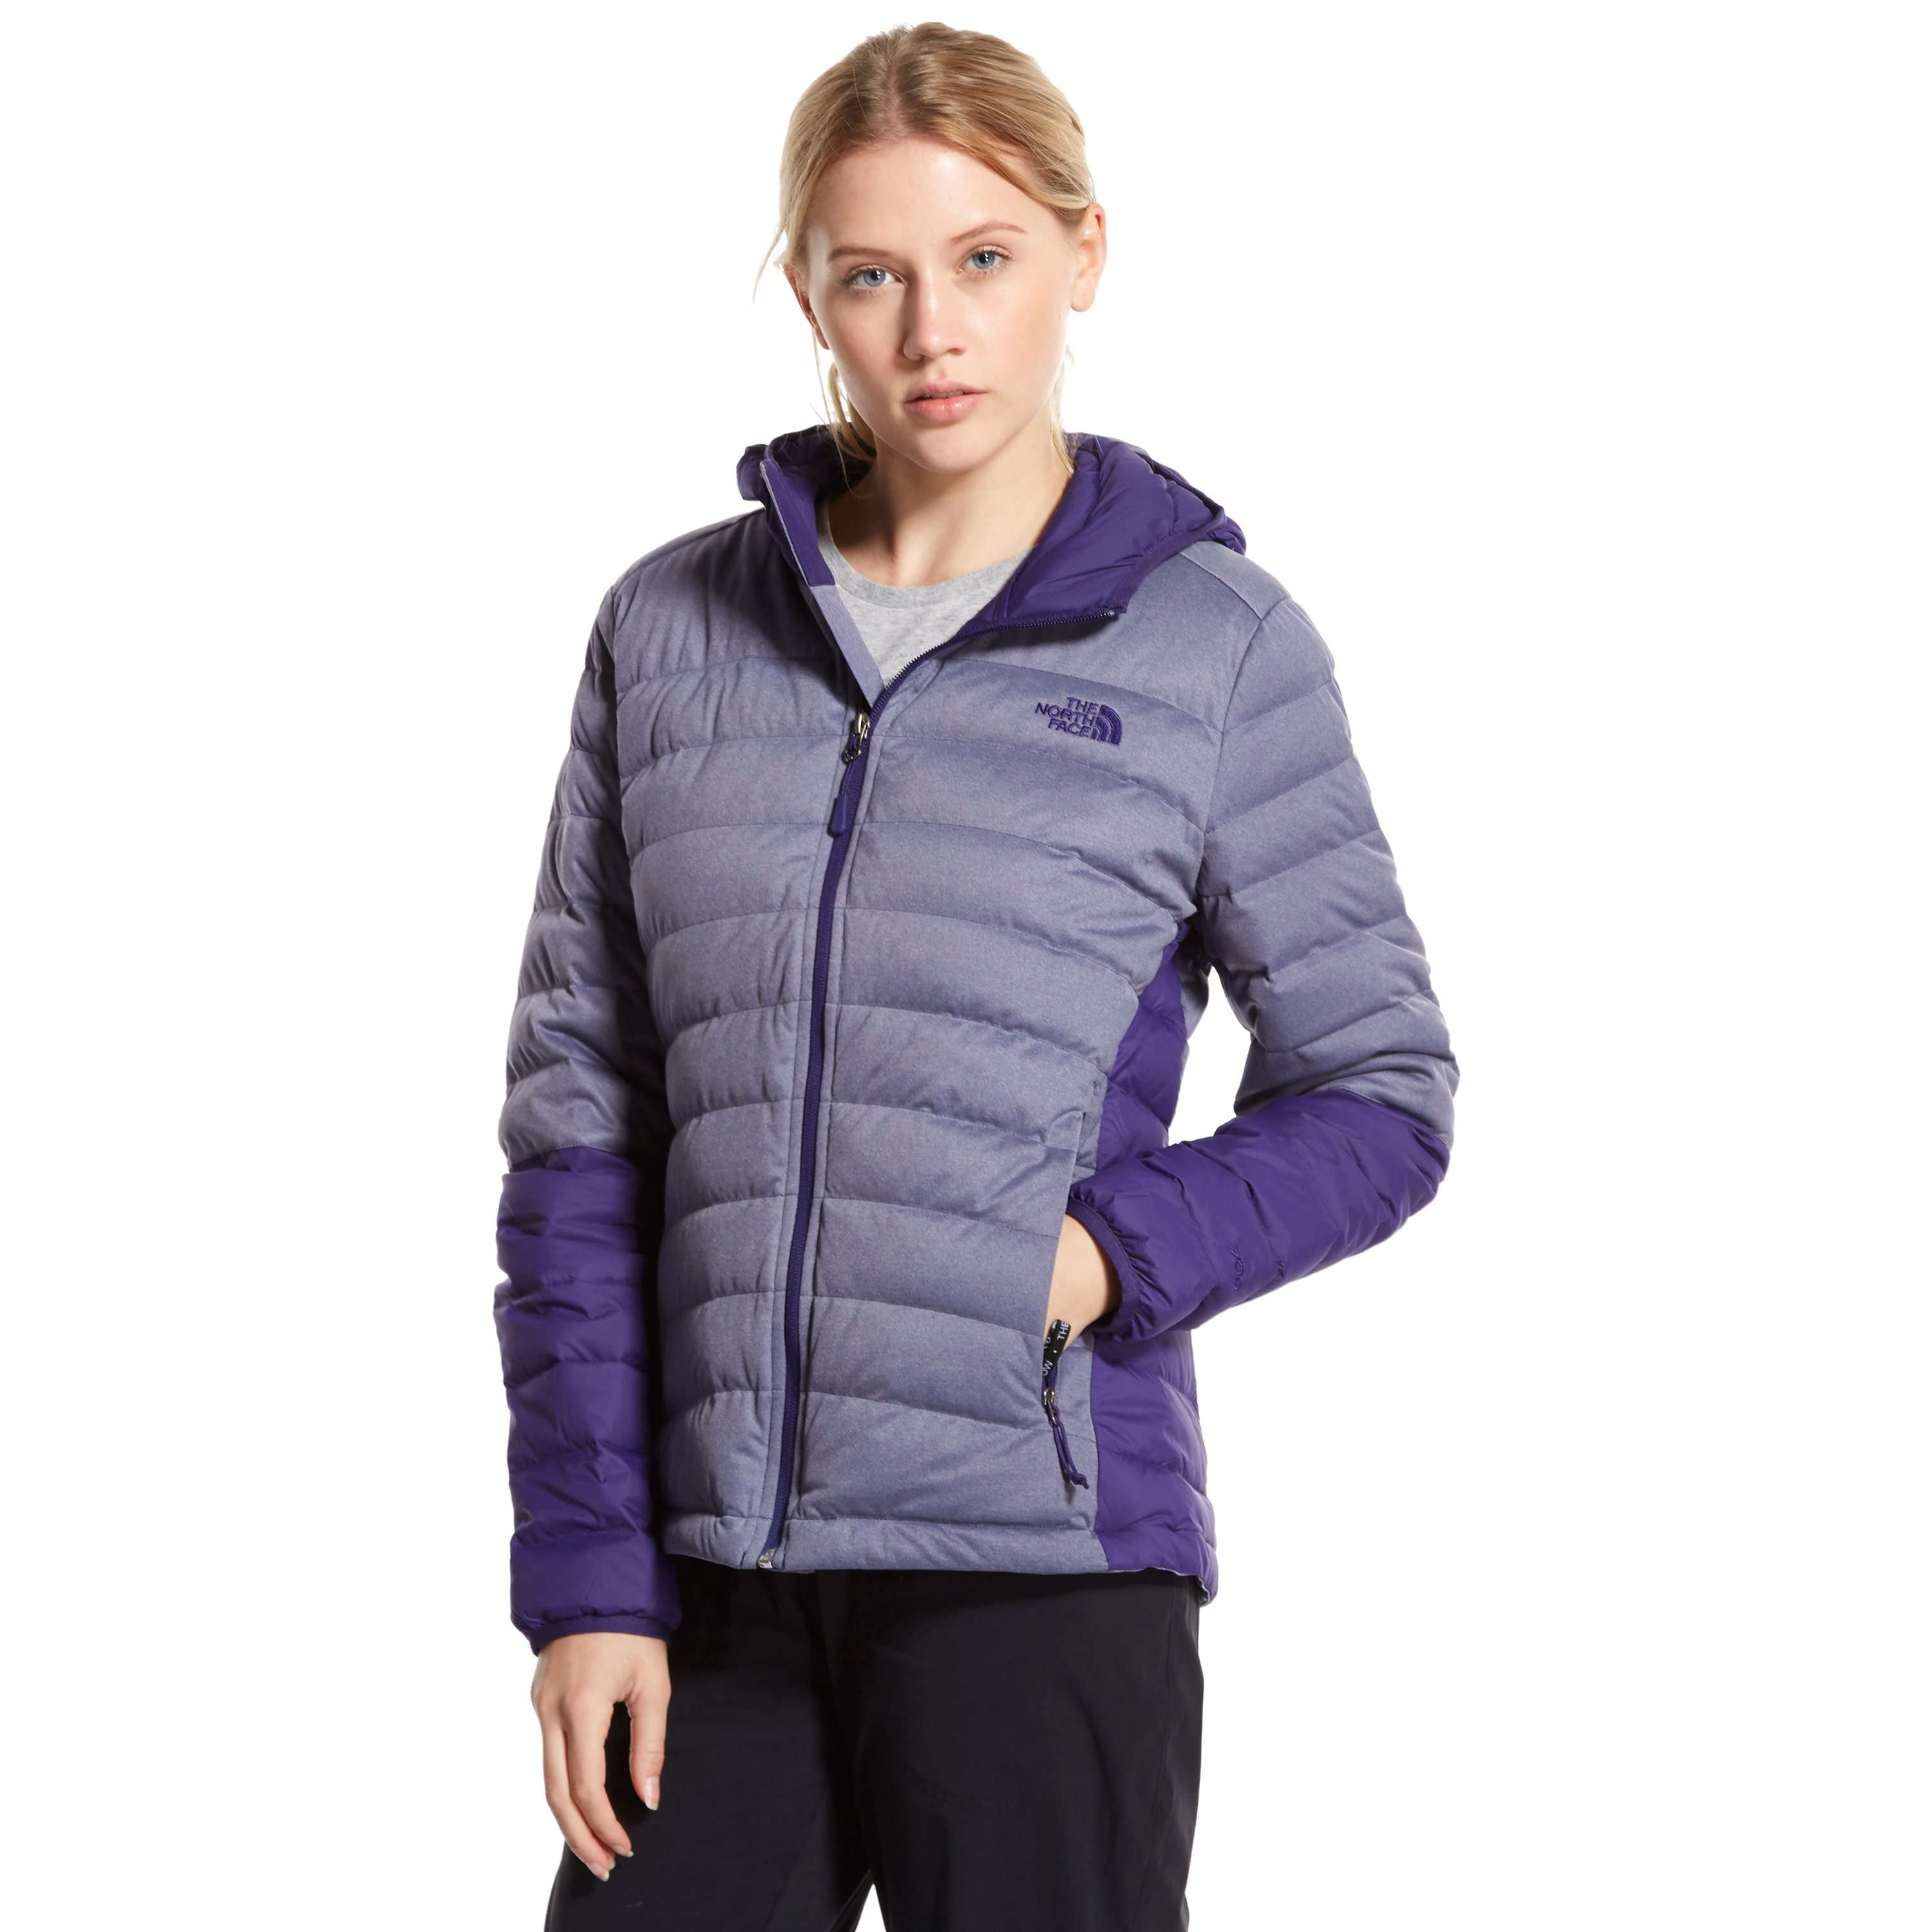 THE NORTH FACE Women's Mistassini Down Jacket